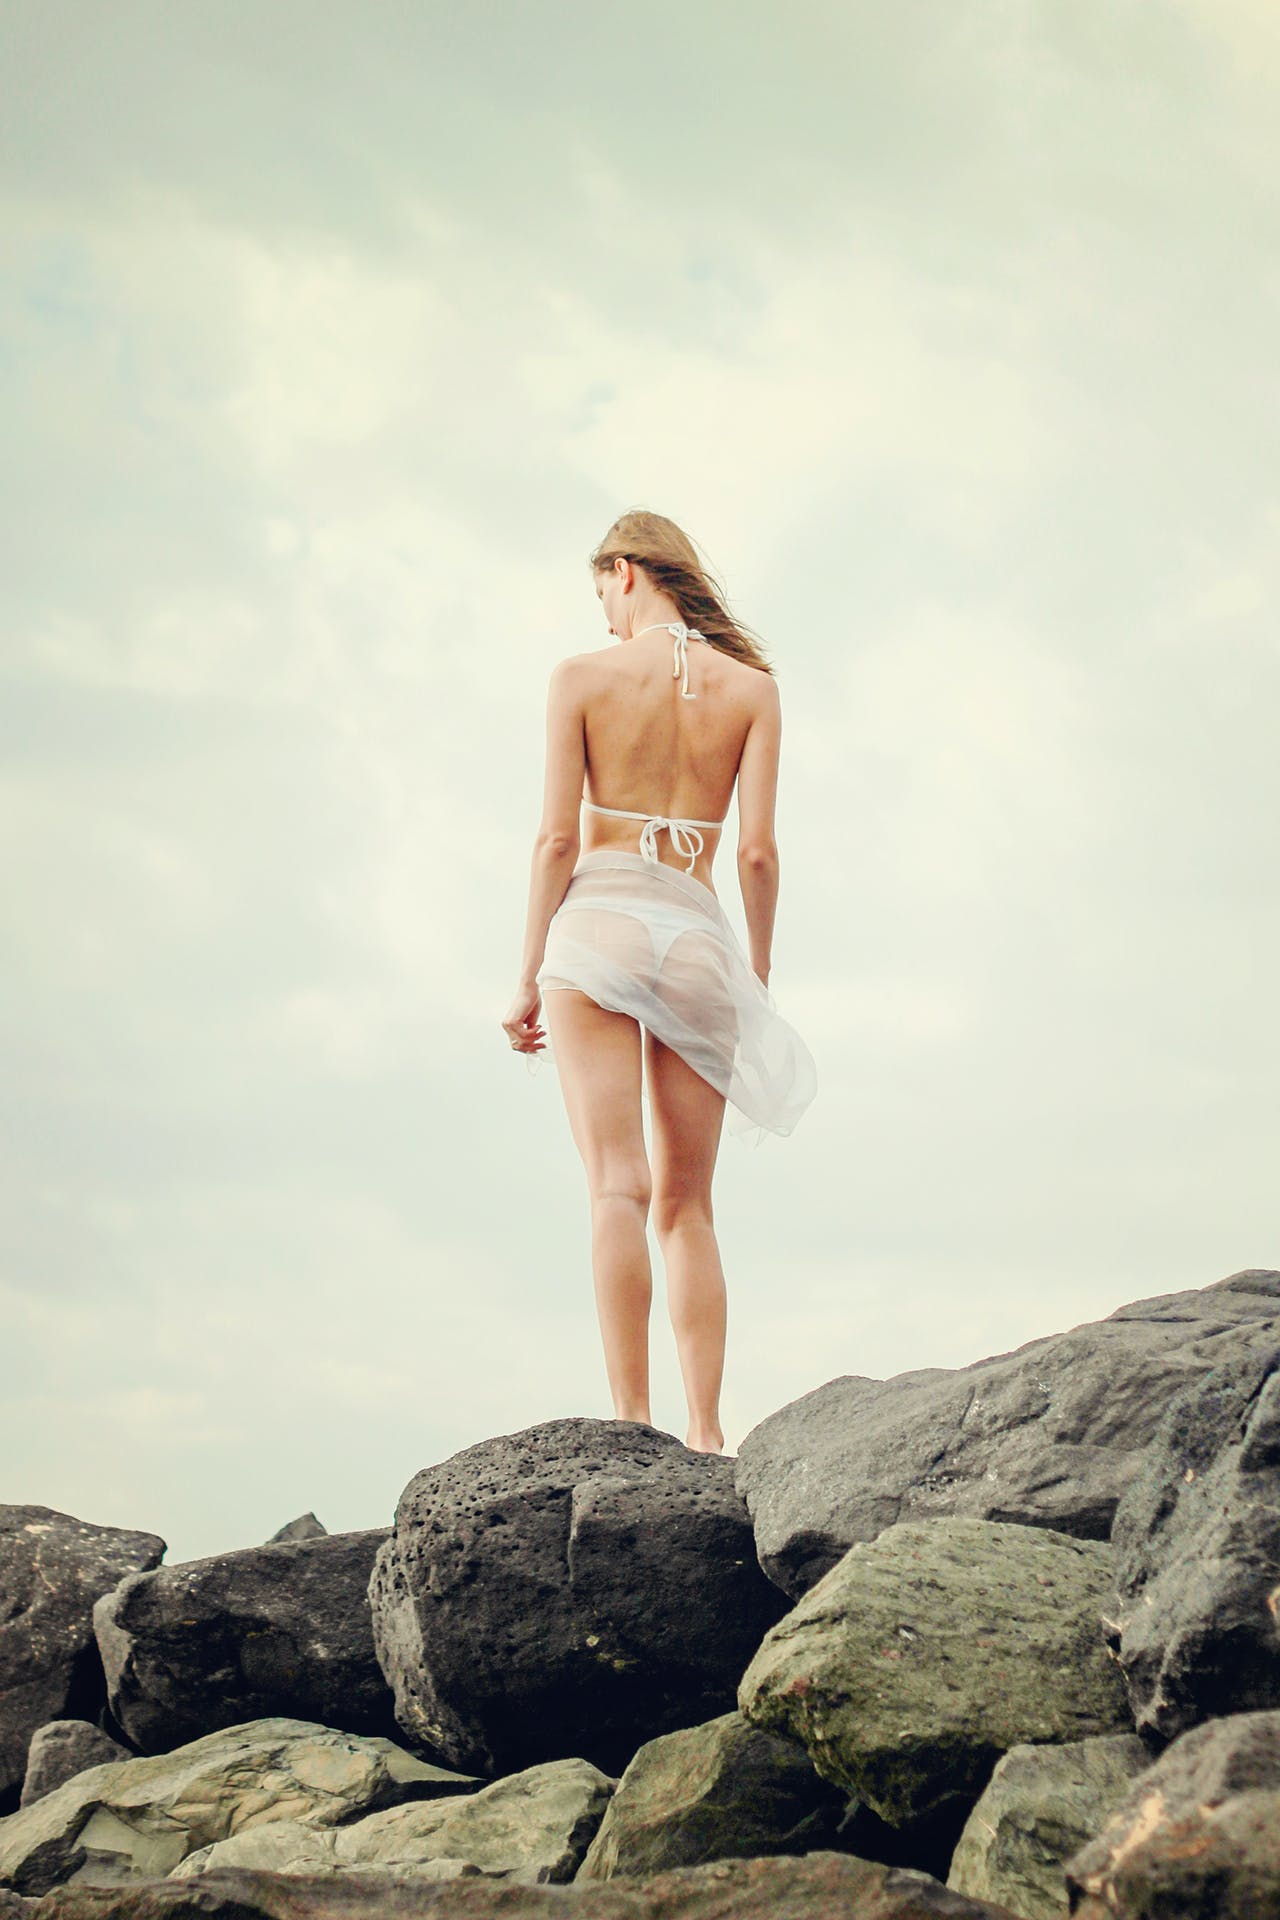 Young Woman Standing on Rock Against Sky